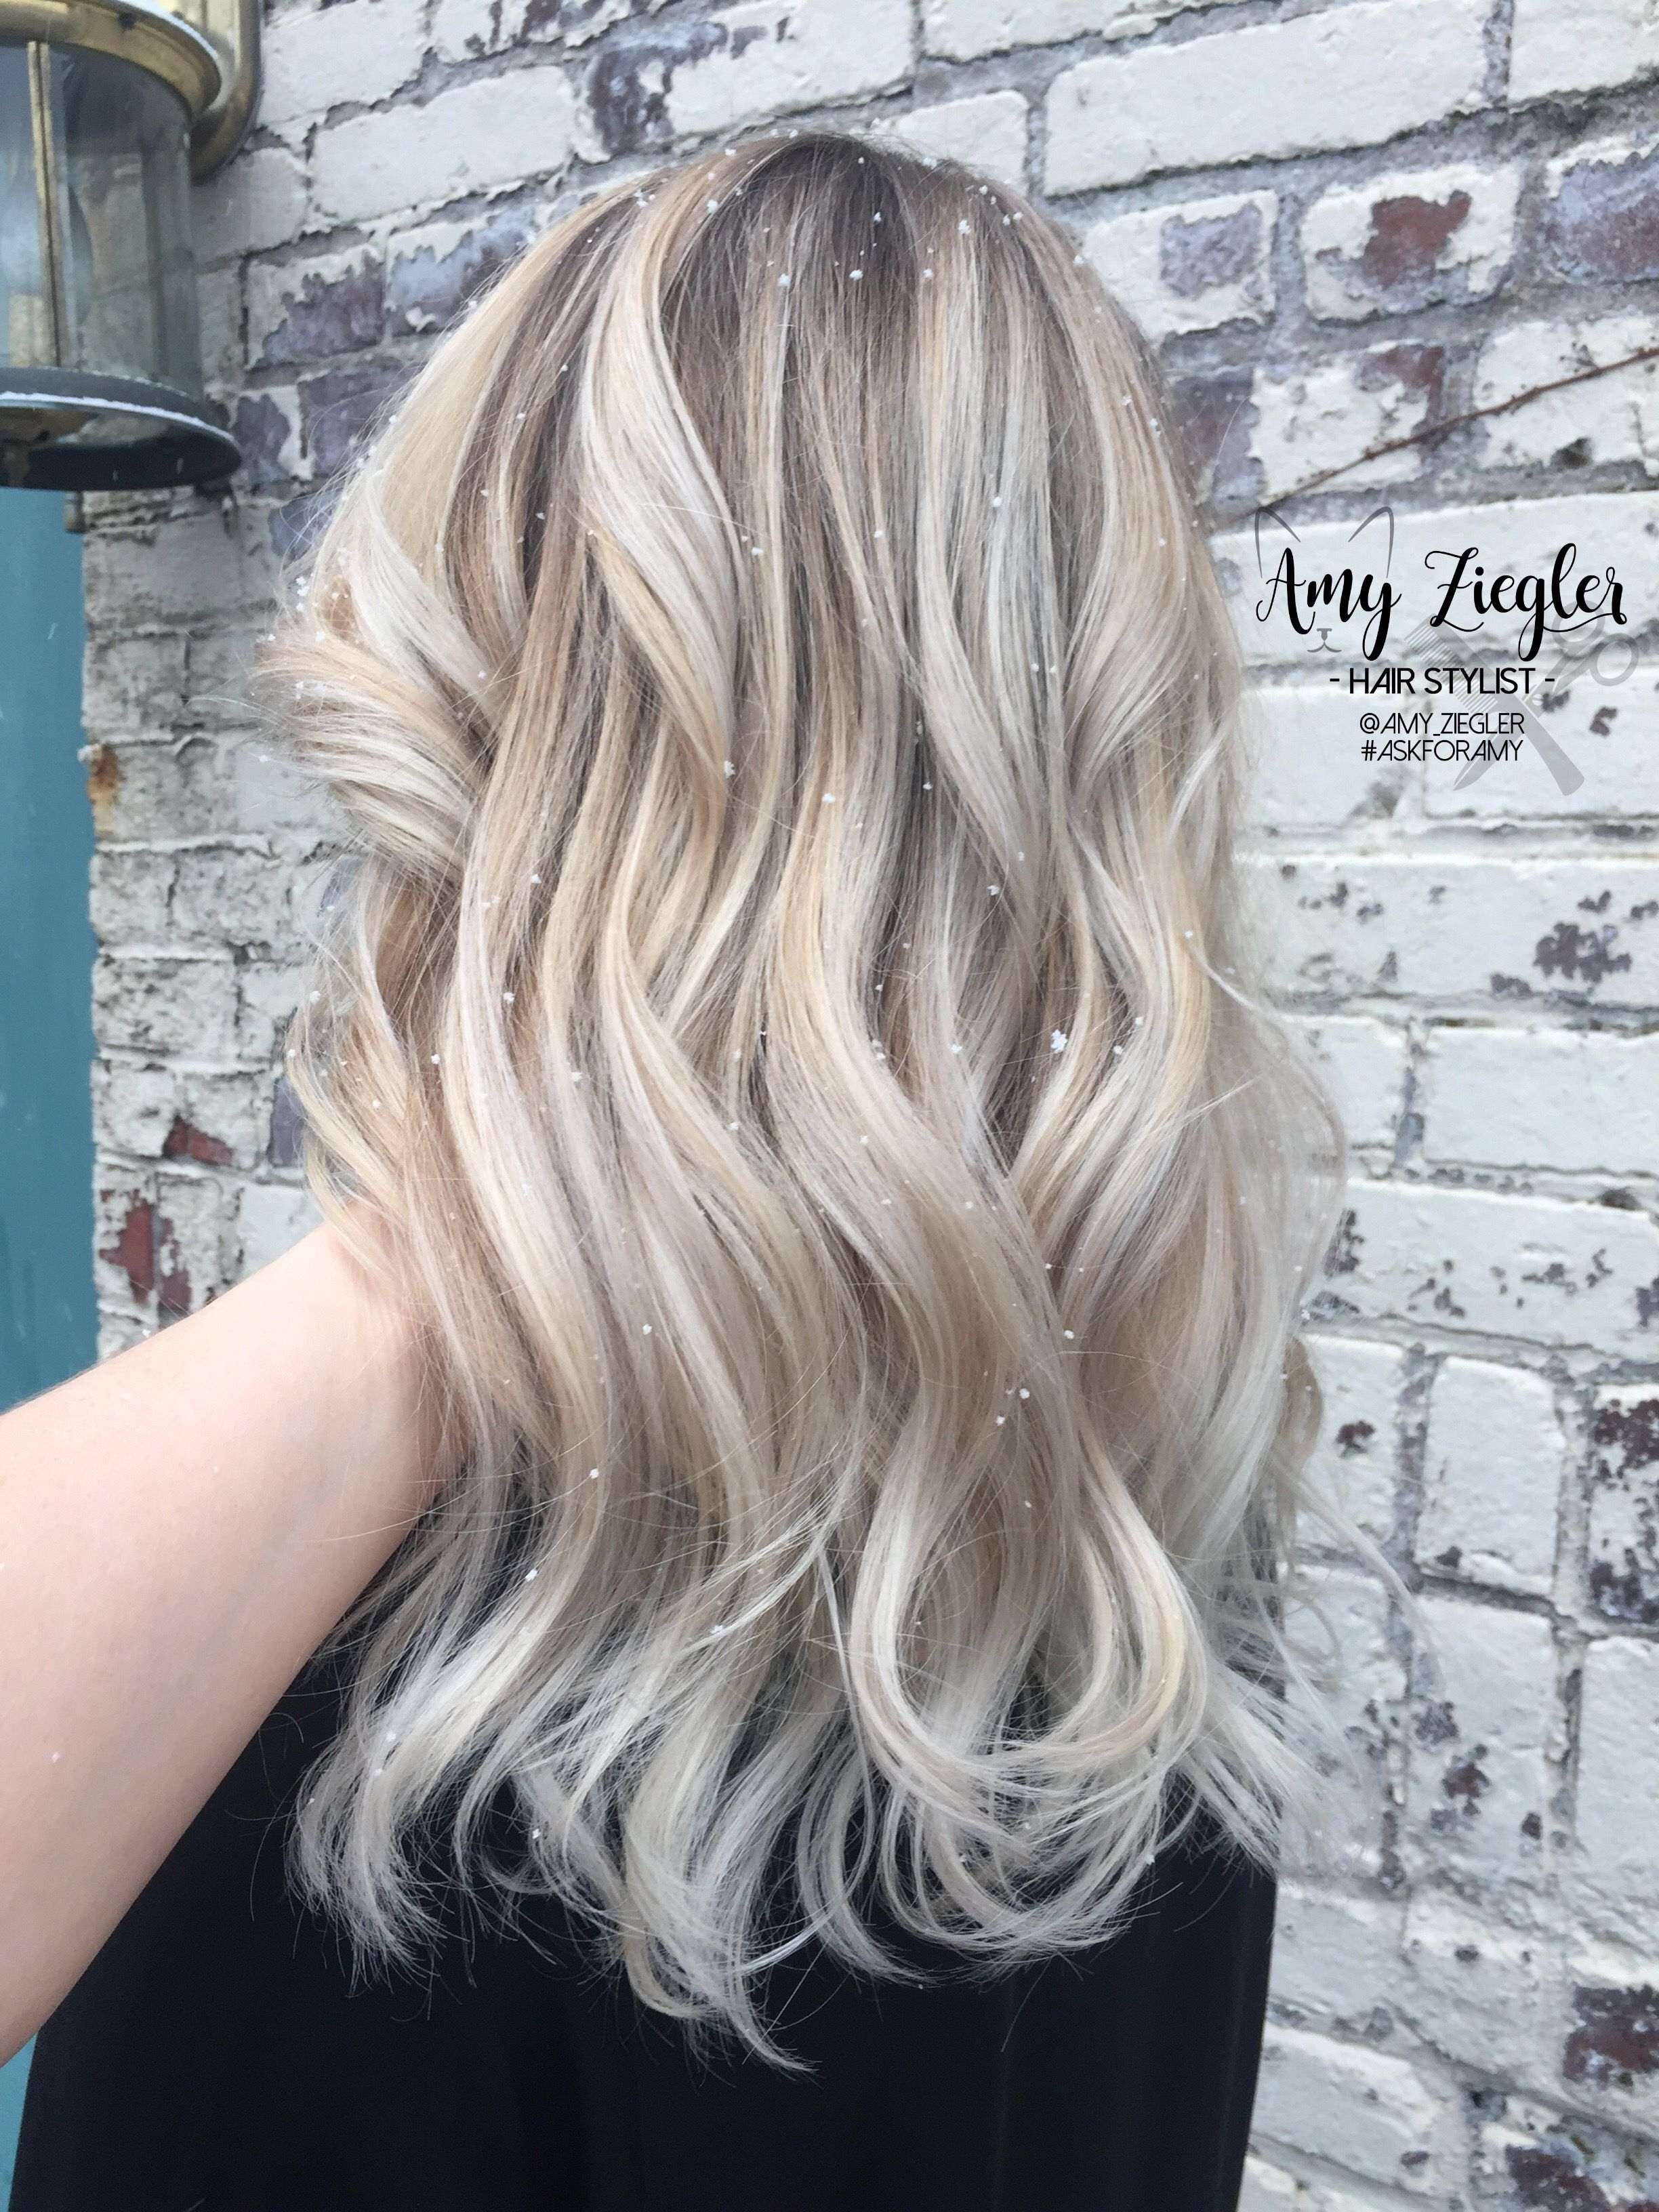 Snow White Blonde Platinum Balayage Ombre By Amyziegler